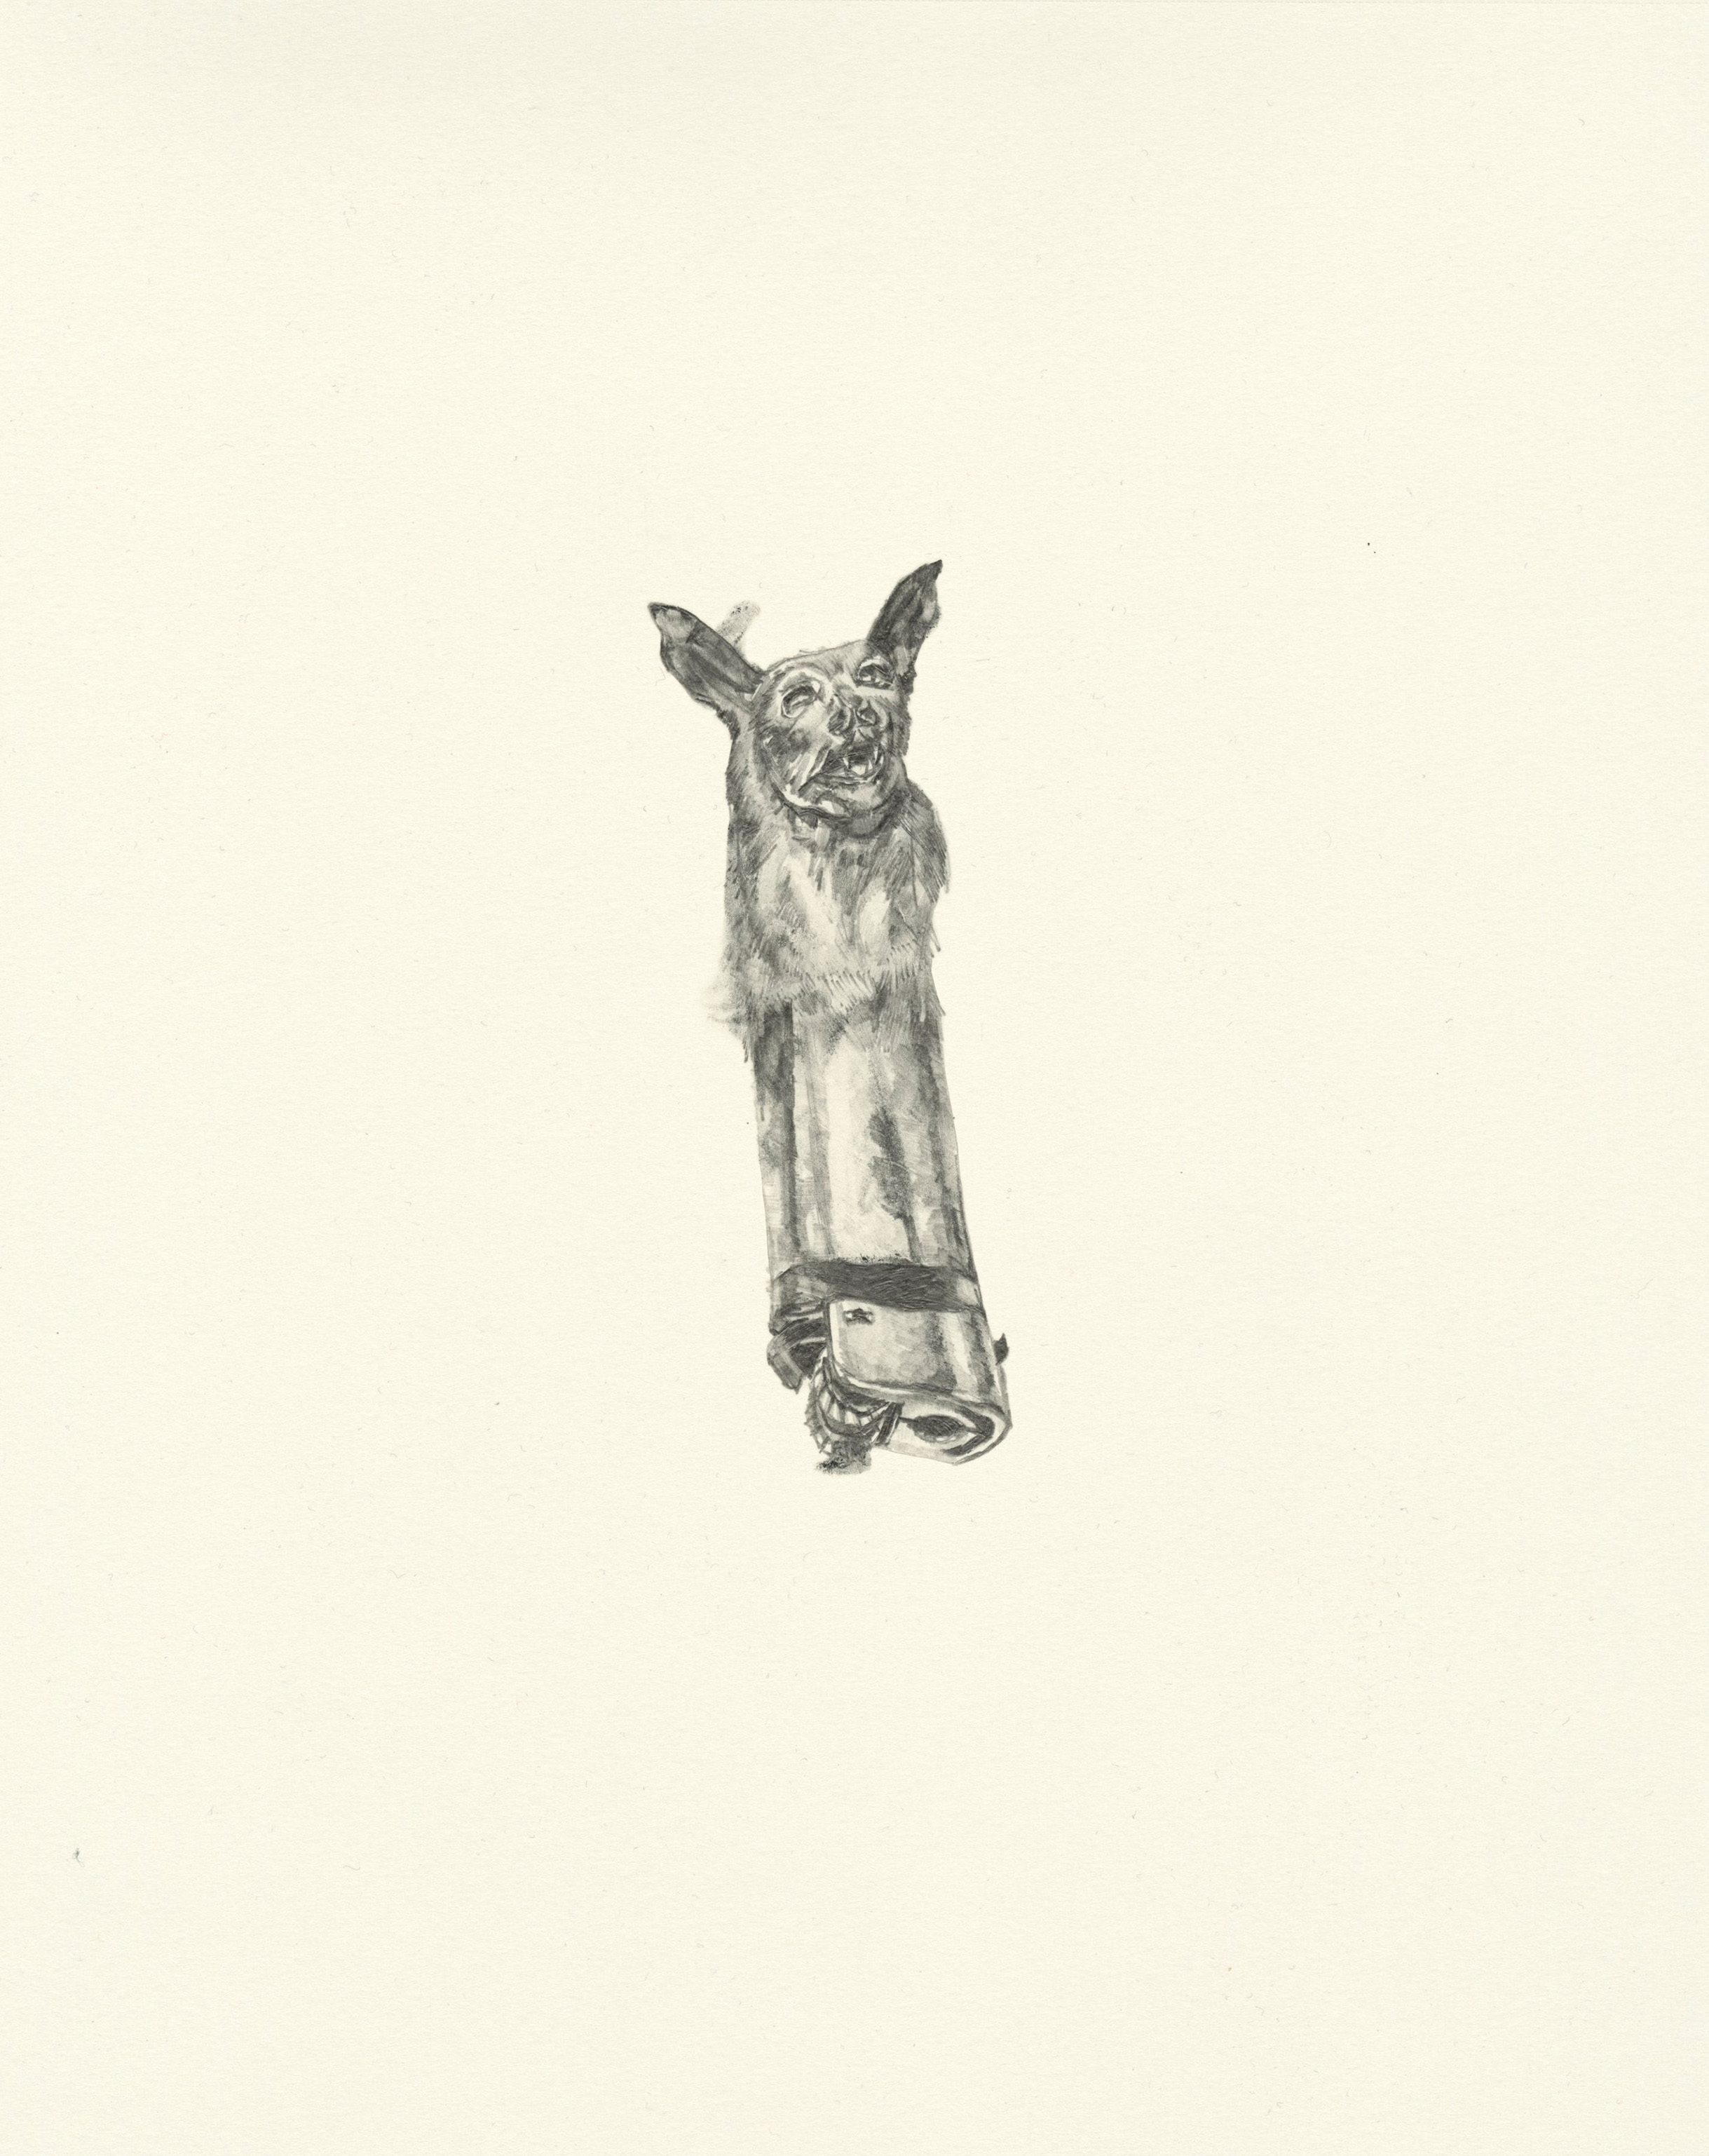 My Boyfriend is a Peacekeeper xxi  | graphite on paper | 9.5INx12IN   Excerpt from My Boyfriend is a Peacekeeper Book:  This bat has the same nose as you. The ears remind me a little of you as well and so I keep him in my pocket. It is nice to hold on to something.